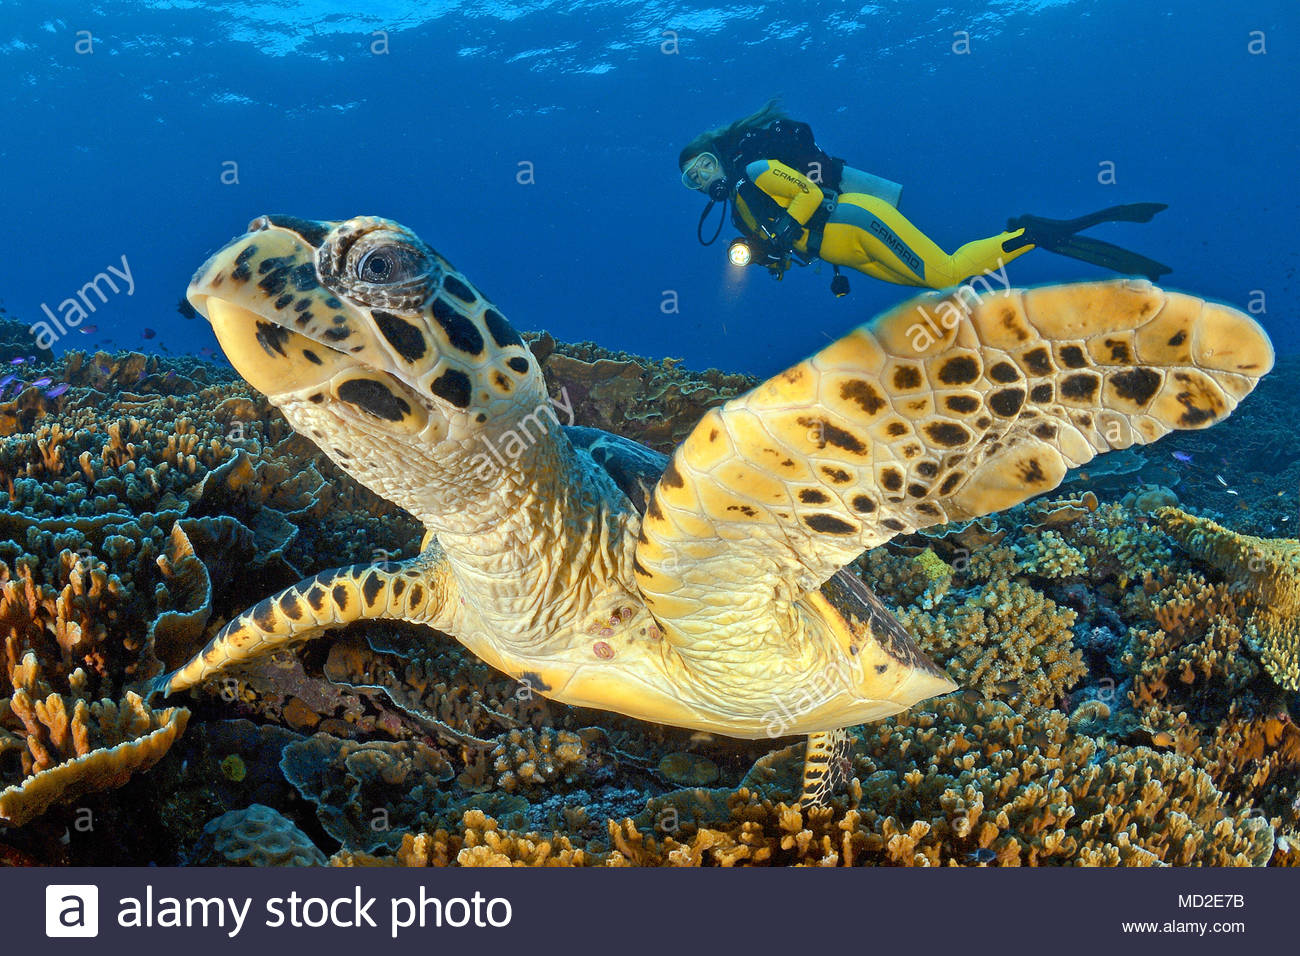 Scuba diver and a Green sea turtle (Chelonia mydas), Ari Atoll, Maldives islands - Stock Image